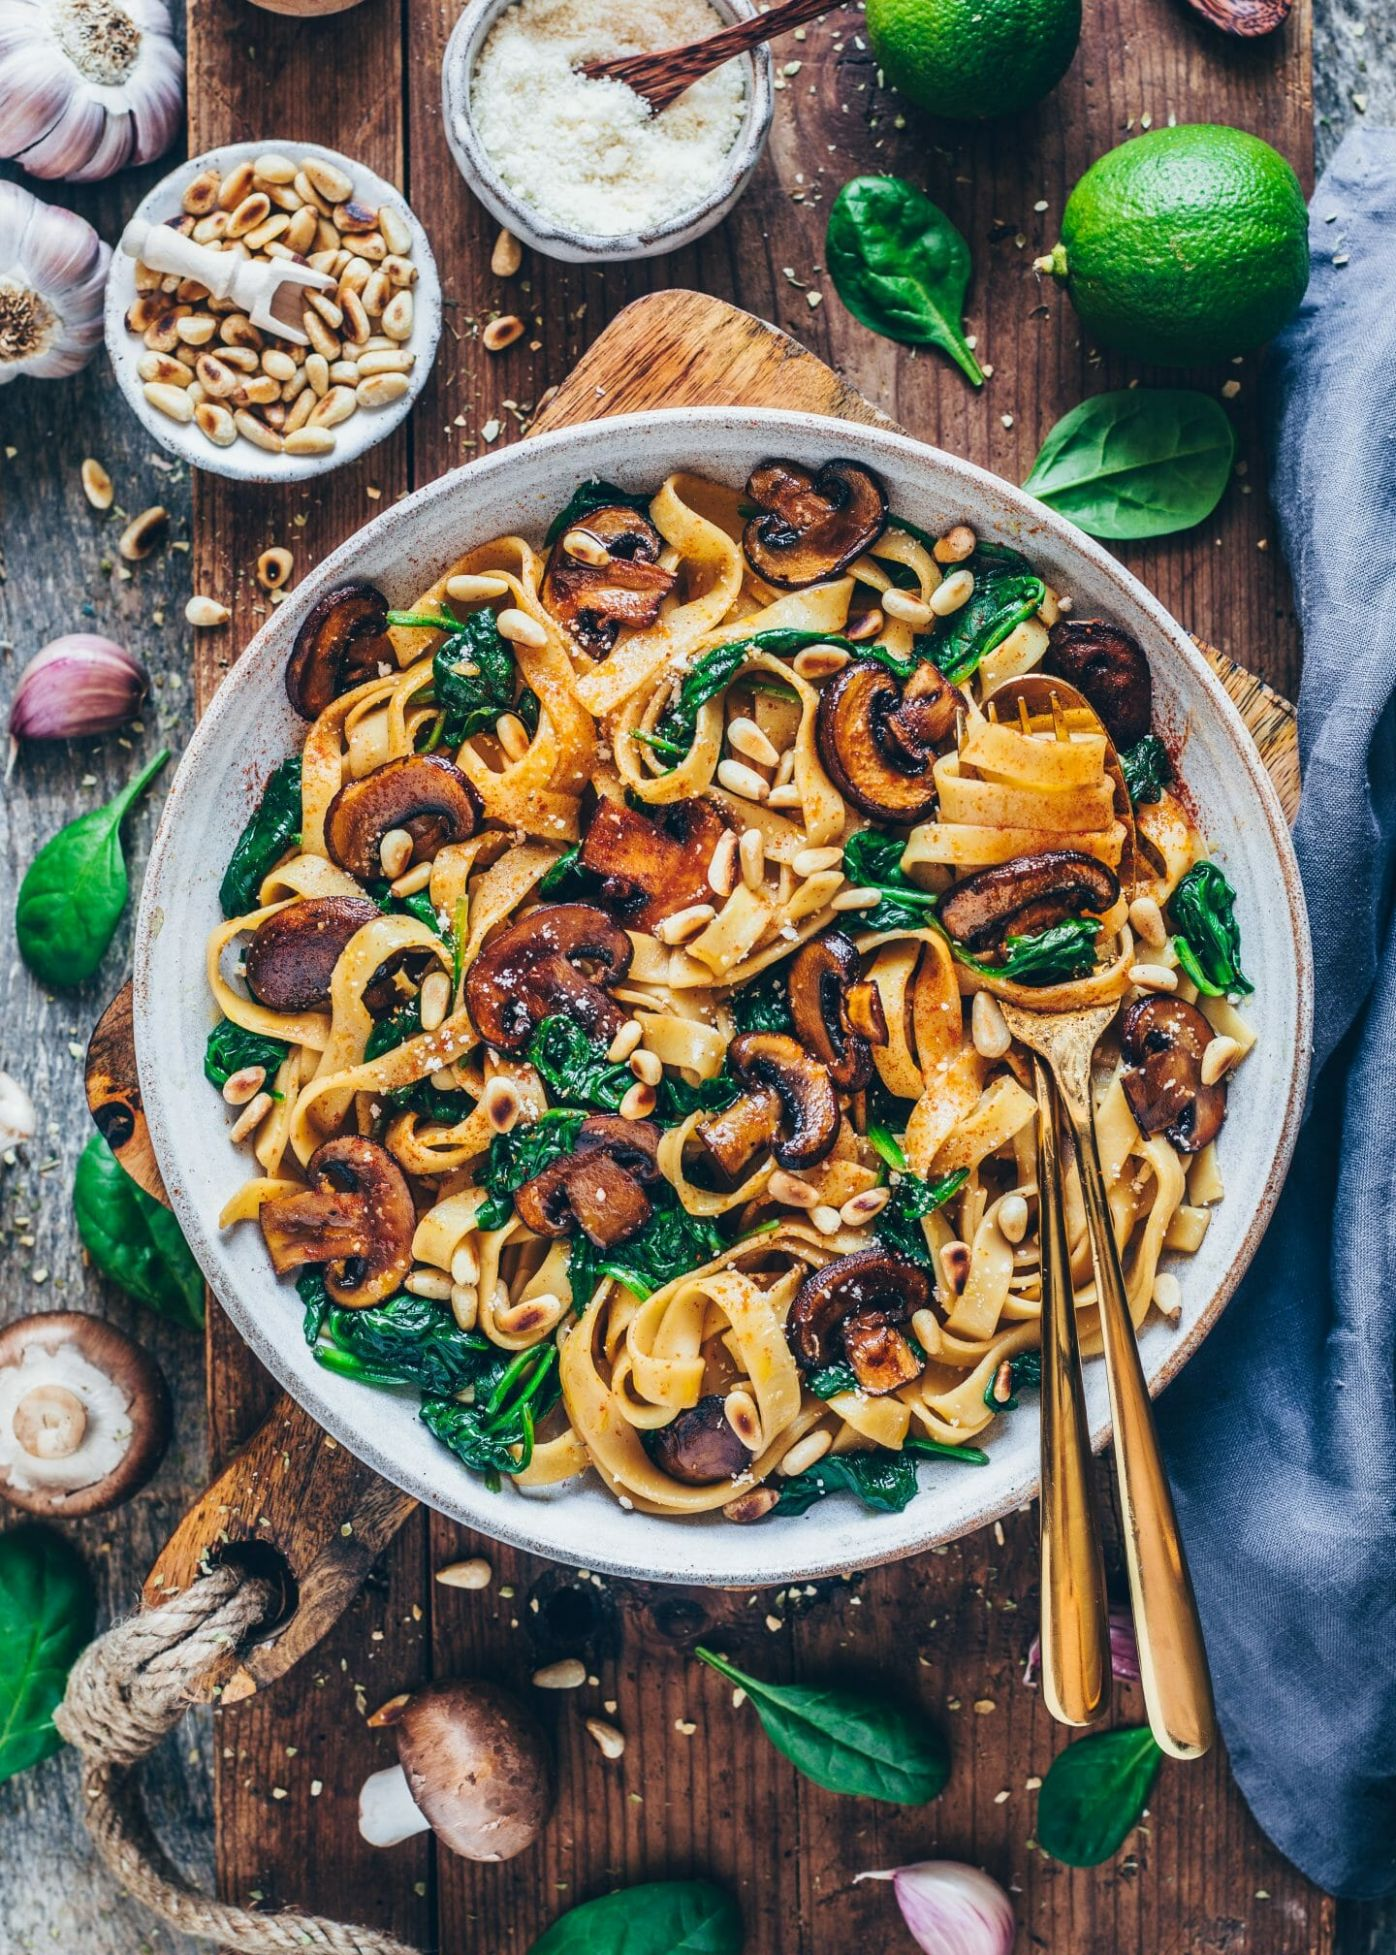 Vegan Mushroom Pasta with Spinach (easy recipe) - Vegetable Recipes Easy Healthy